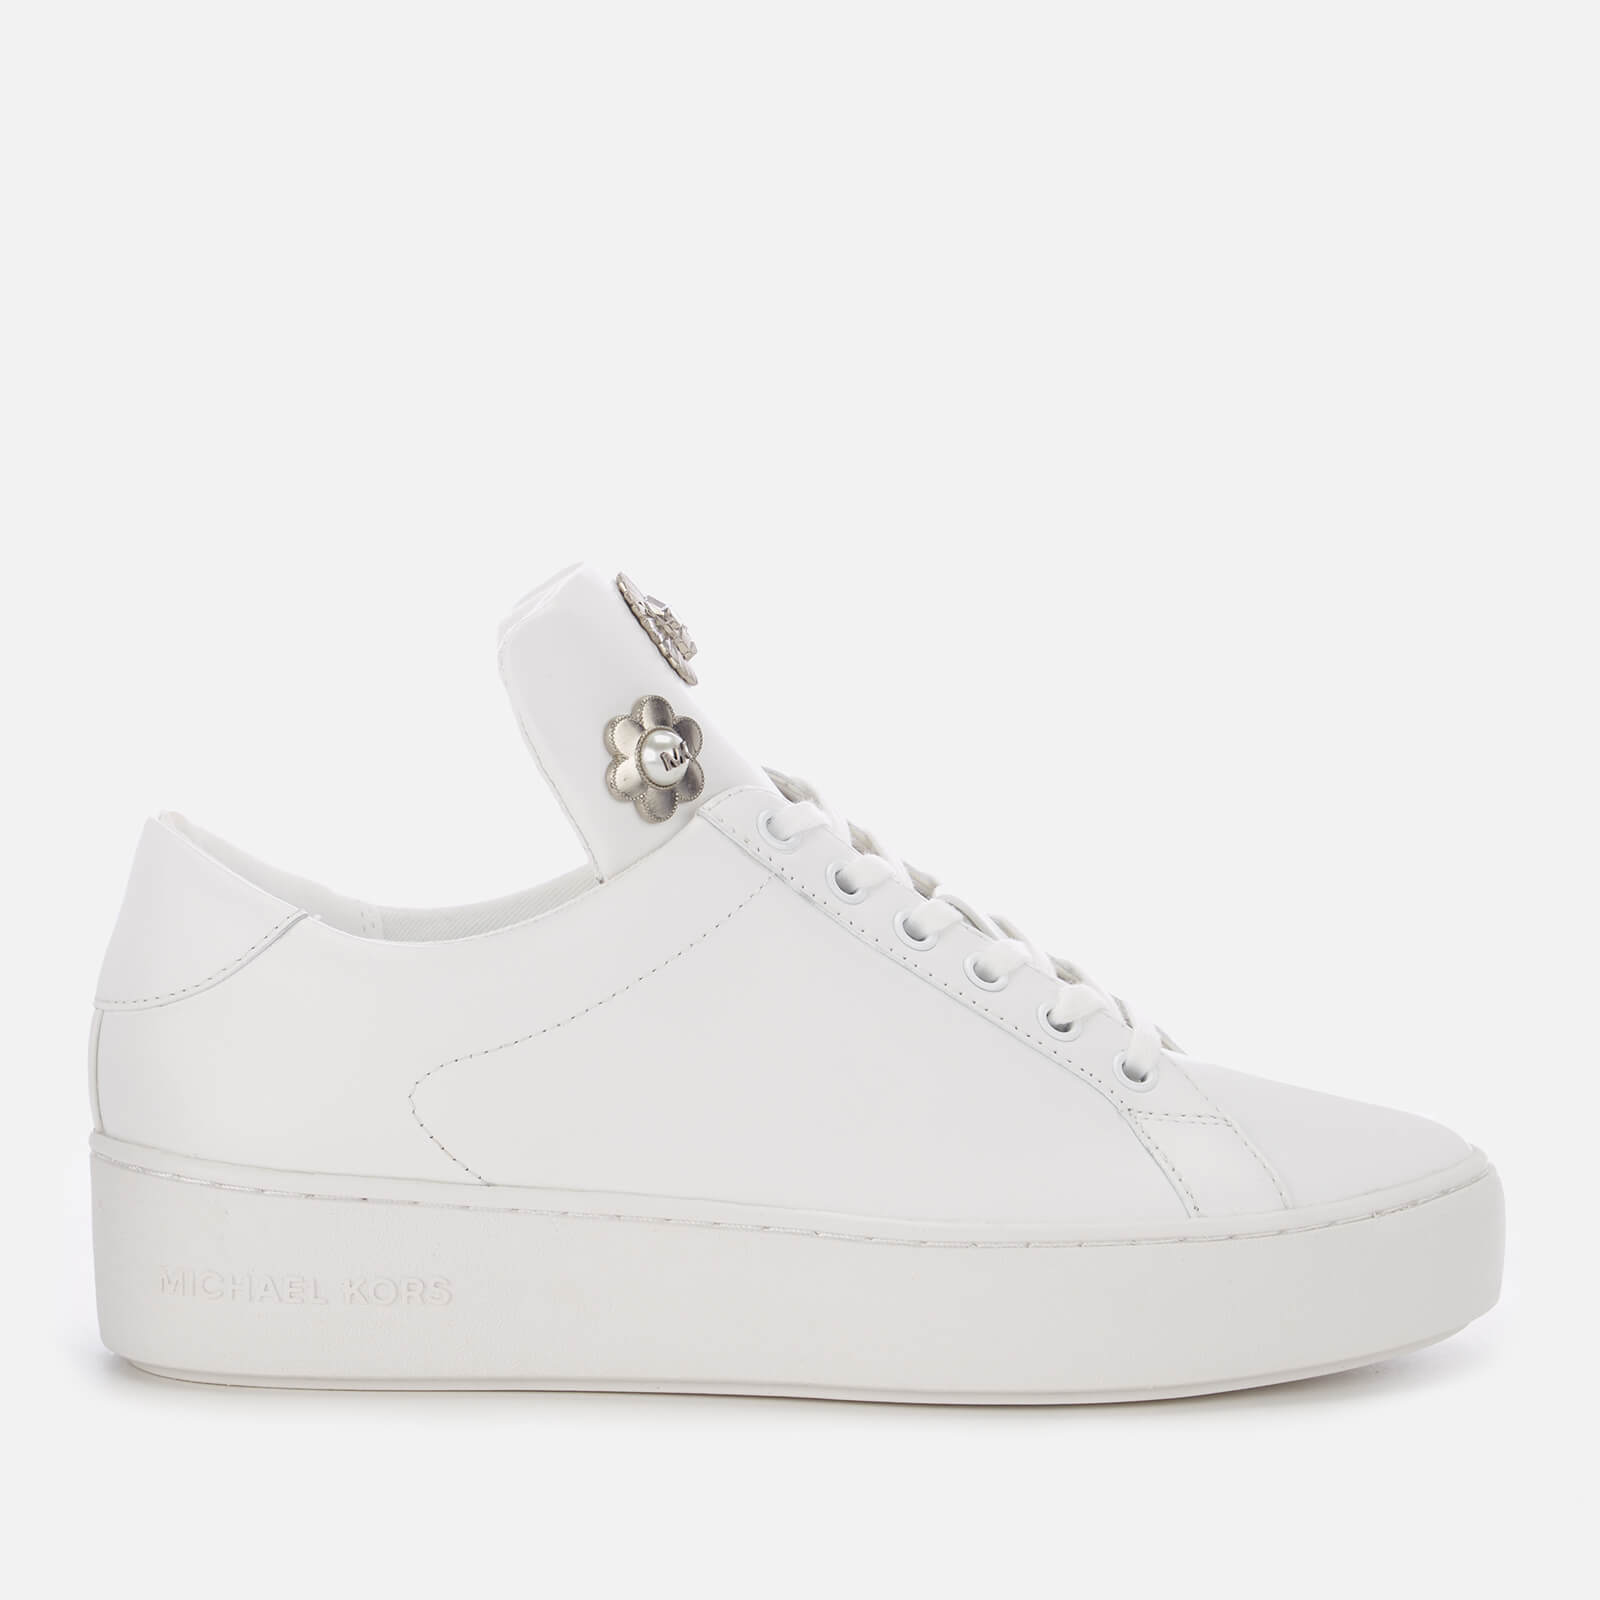 bbbddb15c69 MICHAEL MICHAEL KORS Women s Mindy Lace Up Trainers - Optic White ...